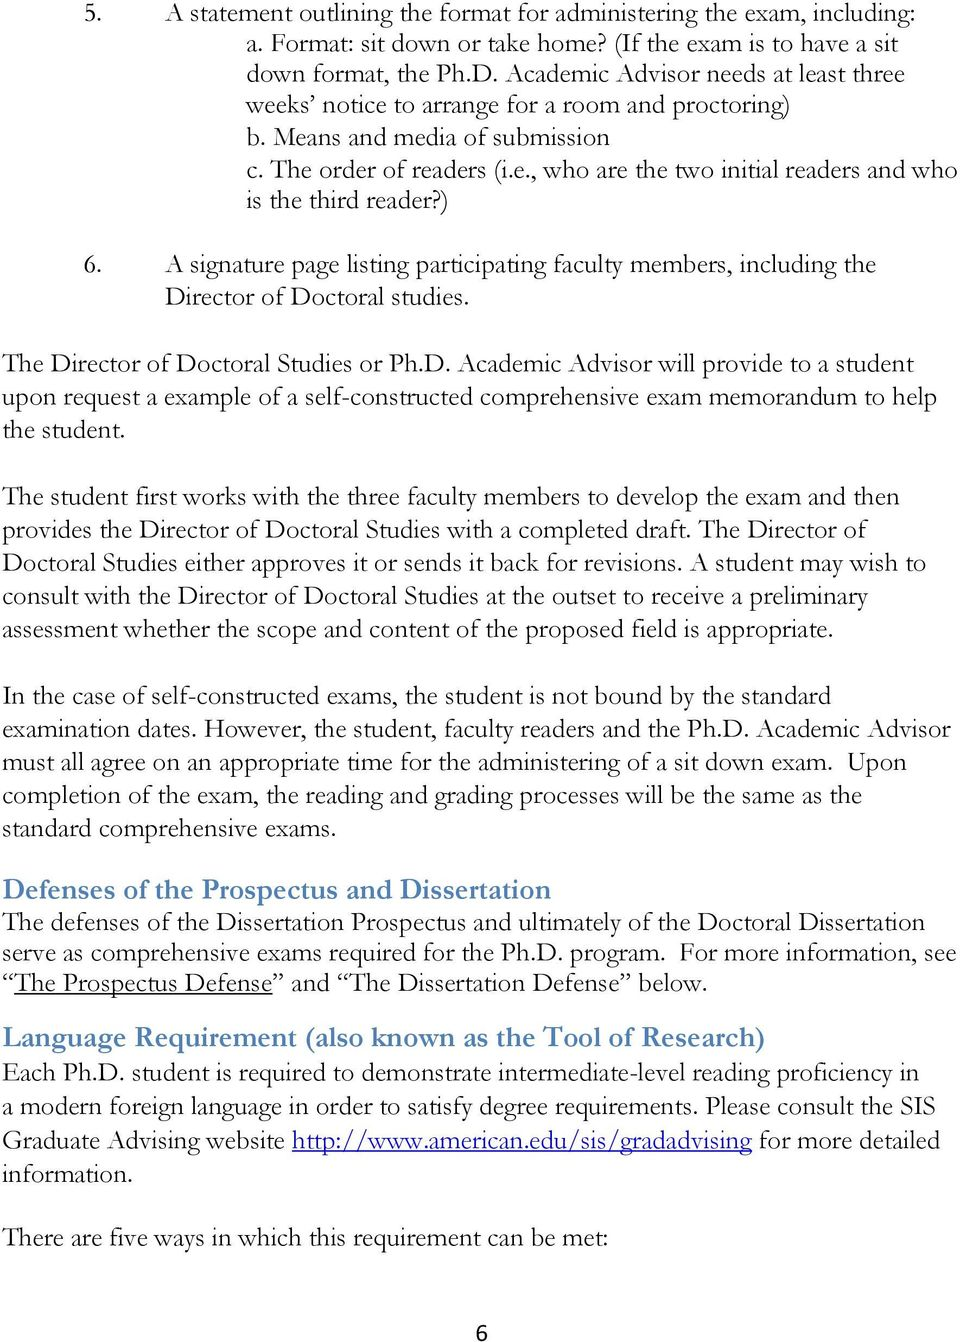 ) 6. A signature page listing participating faculty members, including the Di